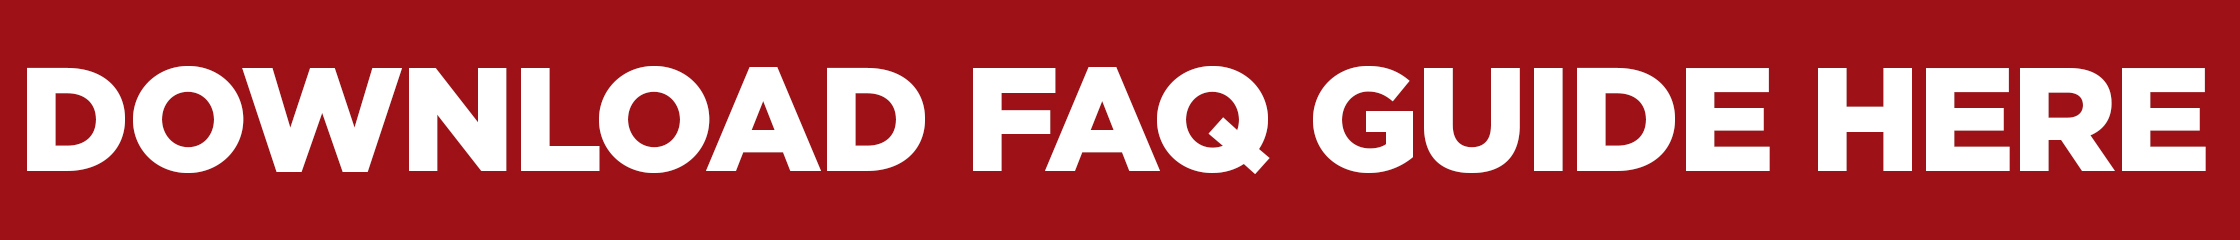 download faq guide here